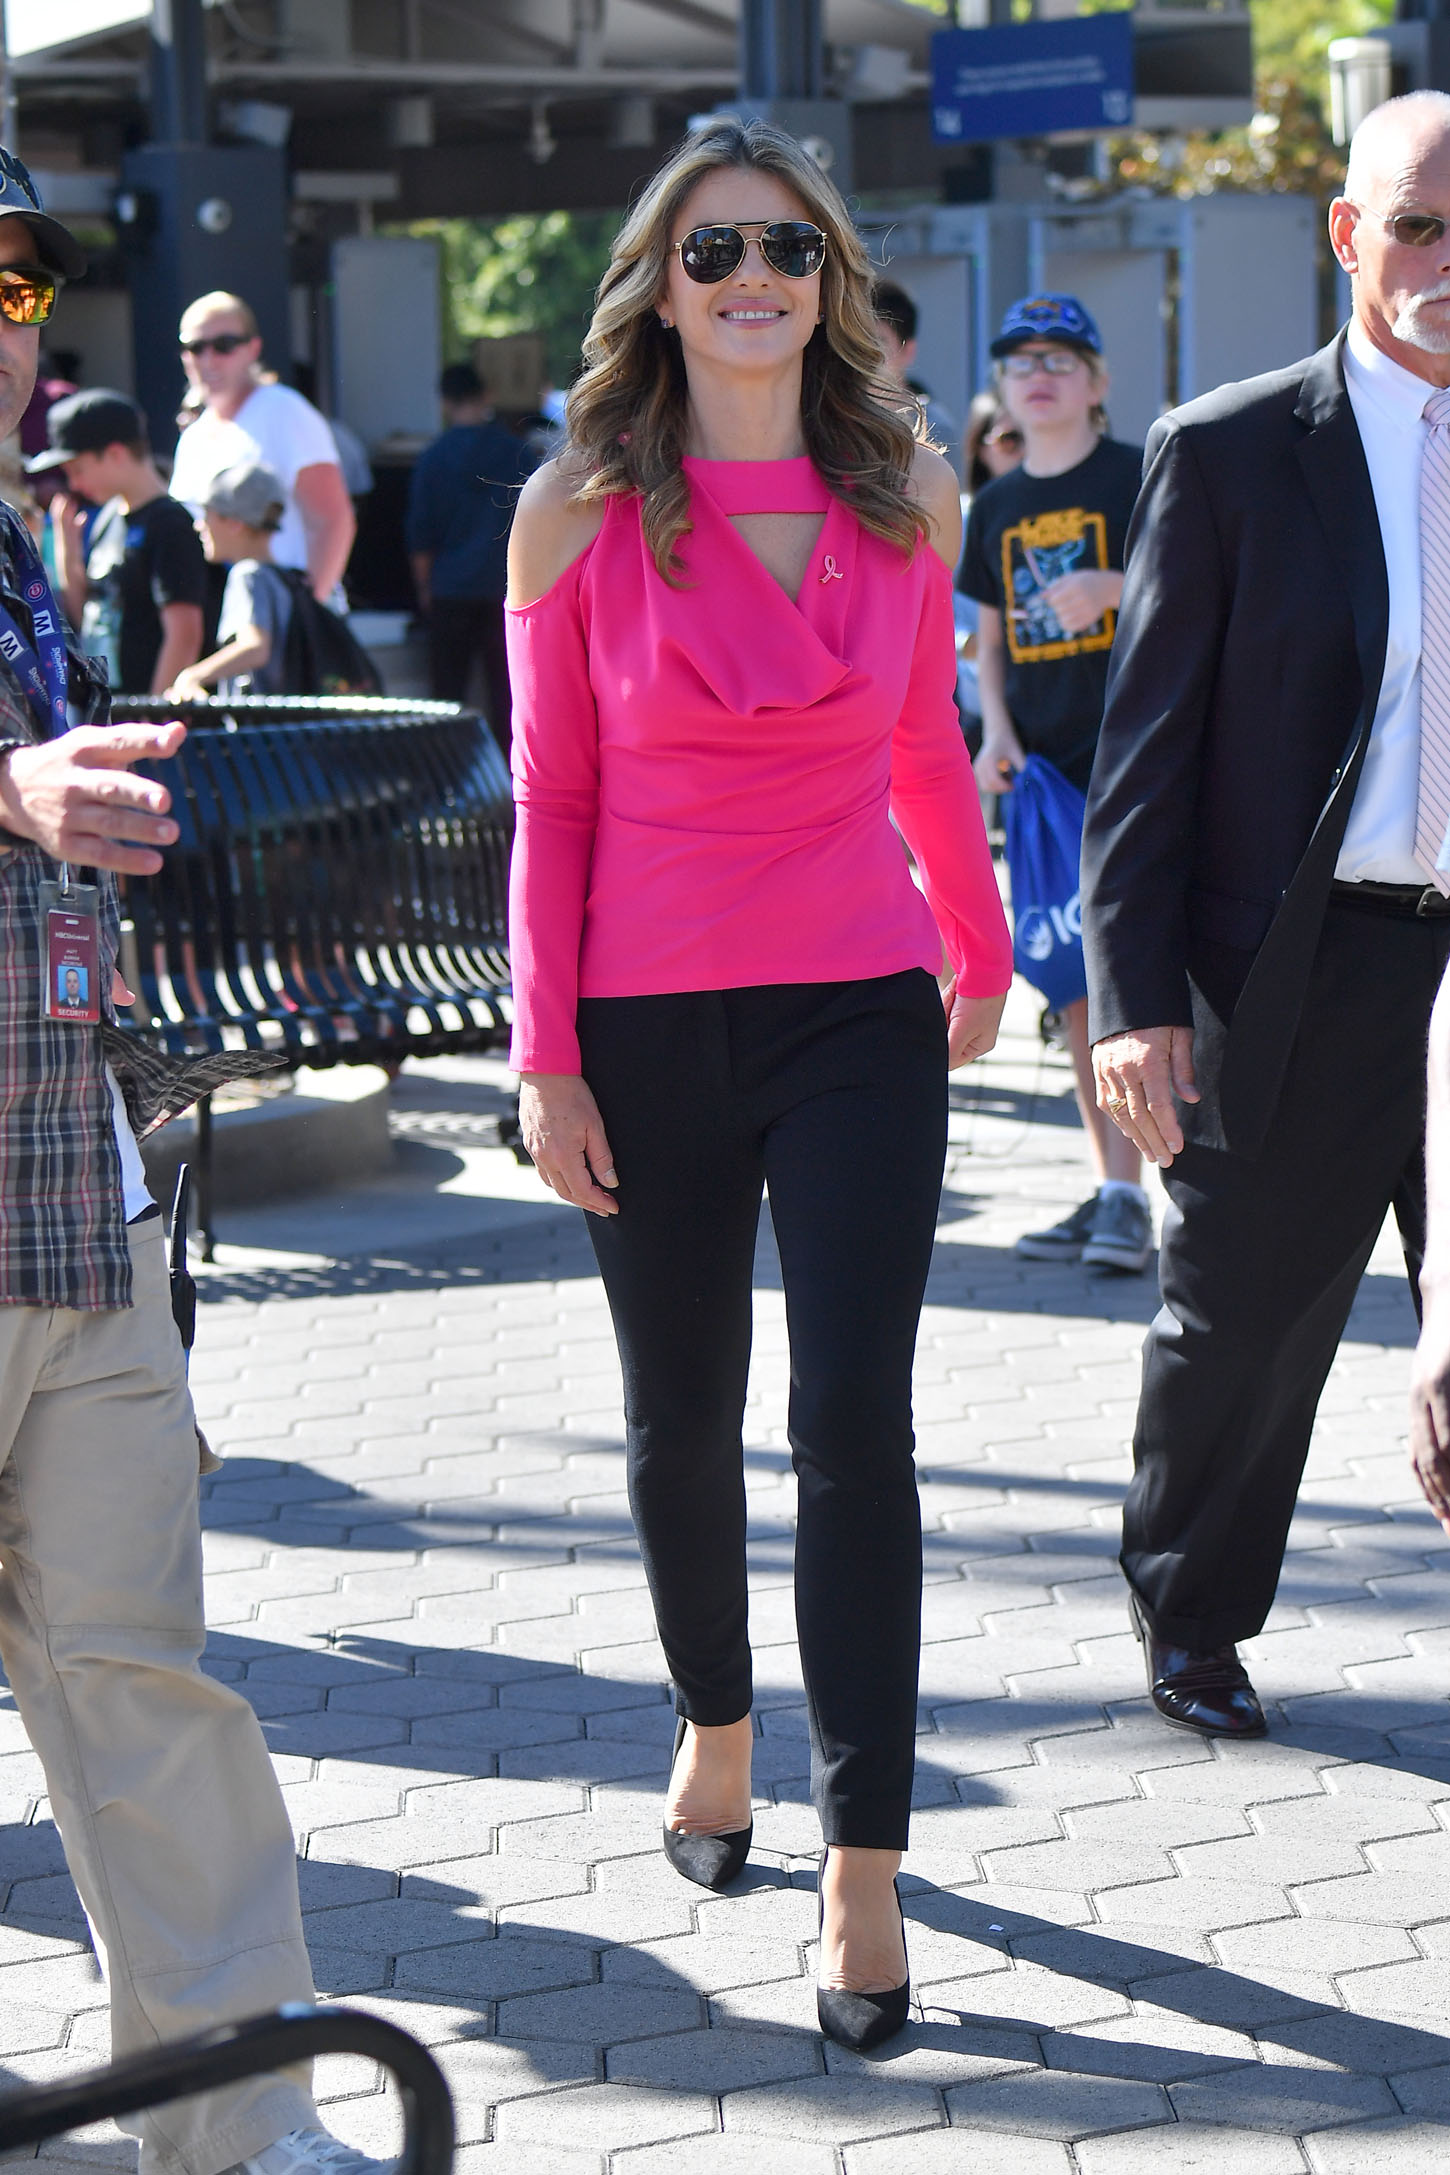 Elizabeth Hurley wears pink while out in Hollywood <P> Pictured: Elizabeth Hurley <B>Ref: SPL1596044  051017  </B><BR/> Picture by: Fern / Splash News<BR/> </P><P> <B>Splash News and Pictures</B><BR/> Los Angeles:310-821-2666<BR/> New York:212-619-2666<BR/> London:870-934-2666<BR/> <span id=